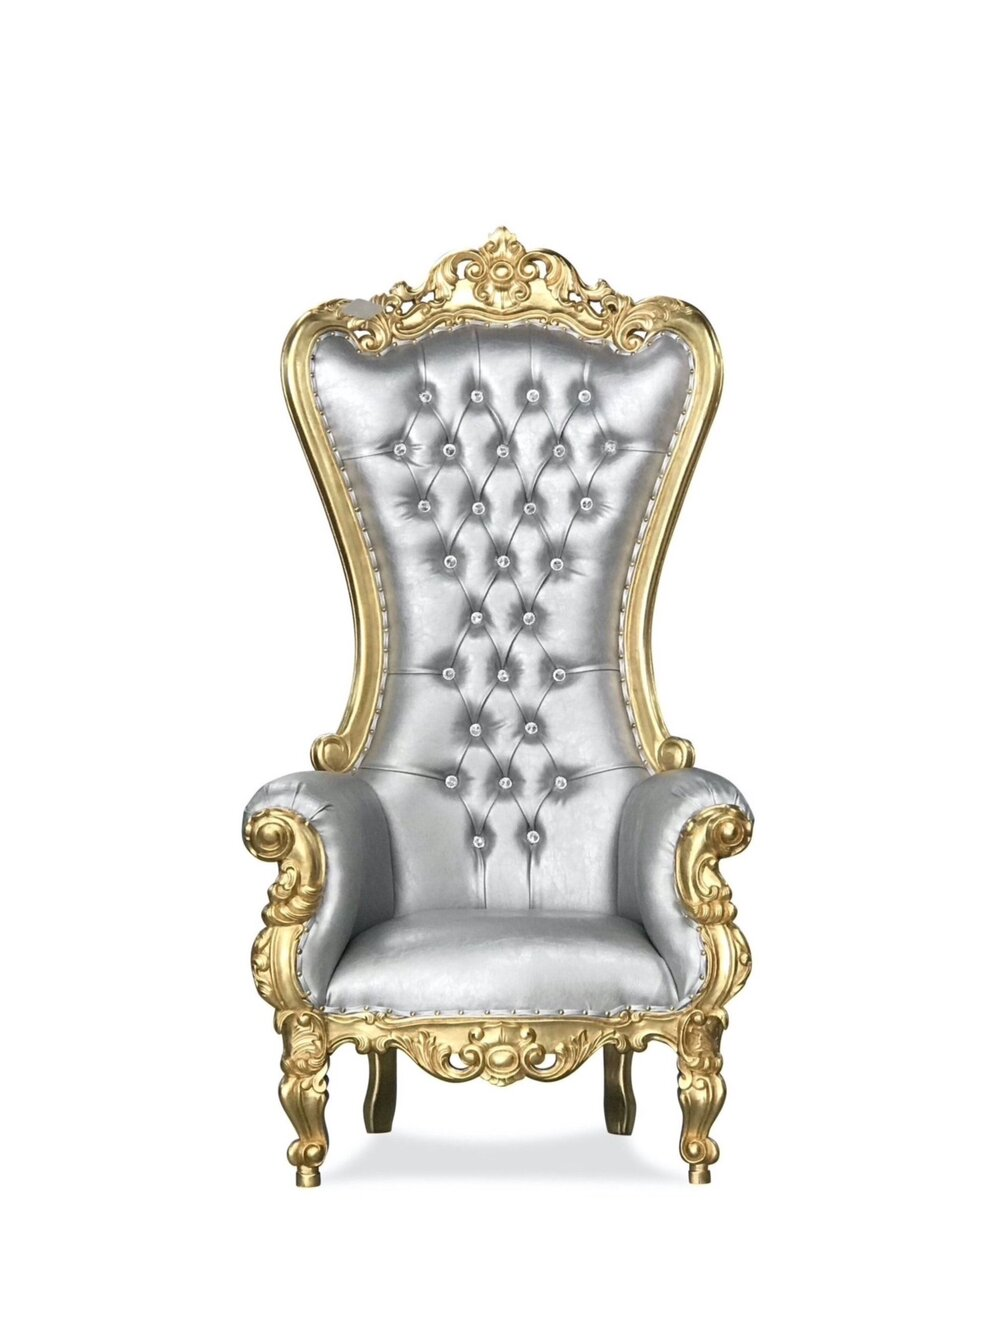 Silver and Gold Throne Chair